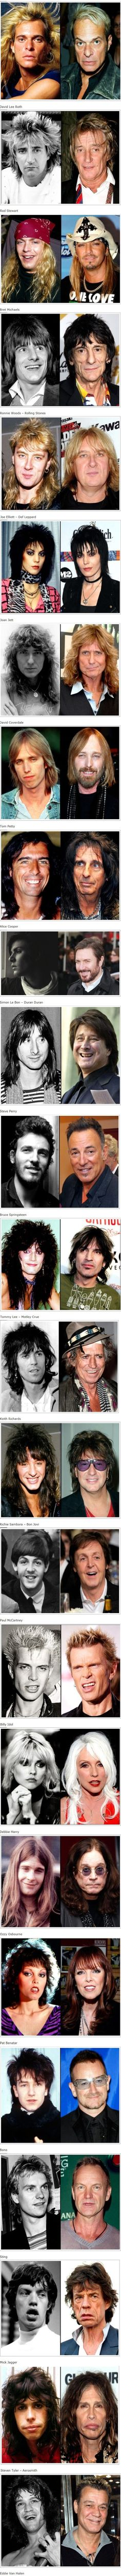 Aging Rock Stars: Then and Now | No Need to ApplyNo Need to Apply  (the girls seem to fare better than the boys)